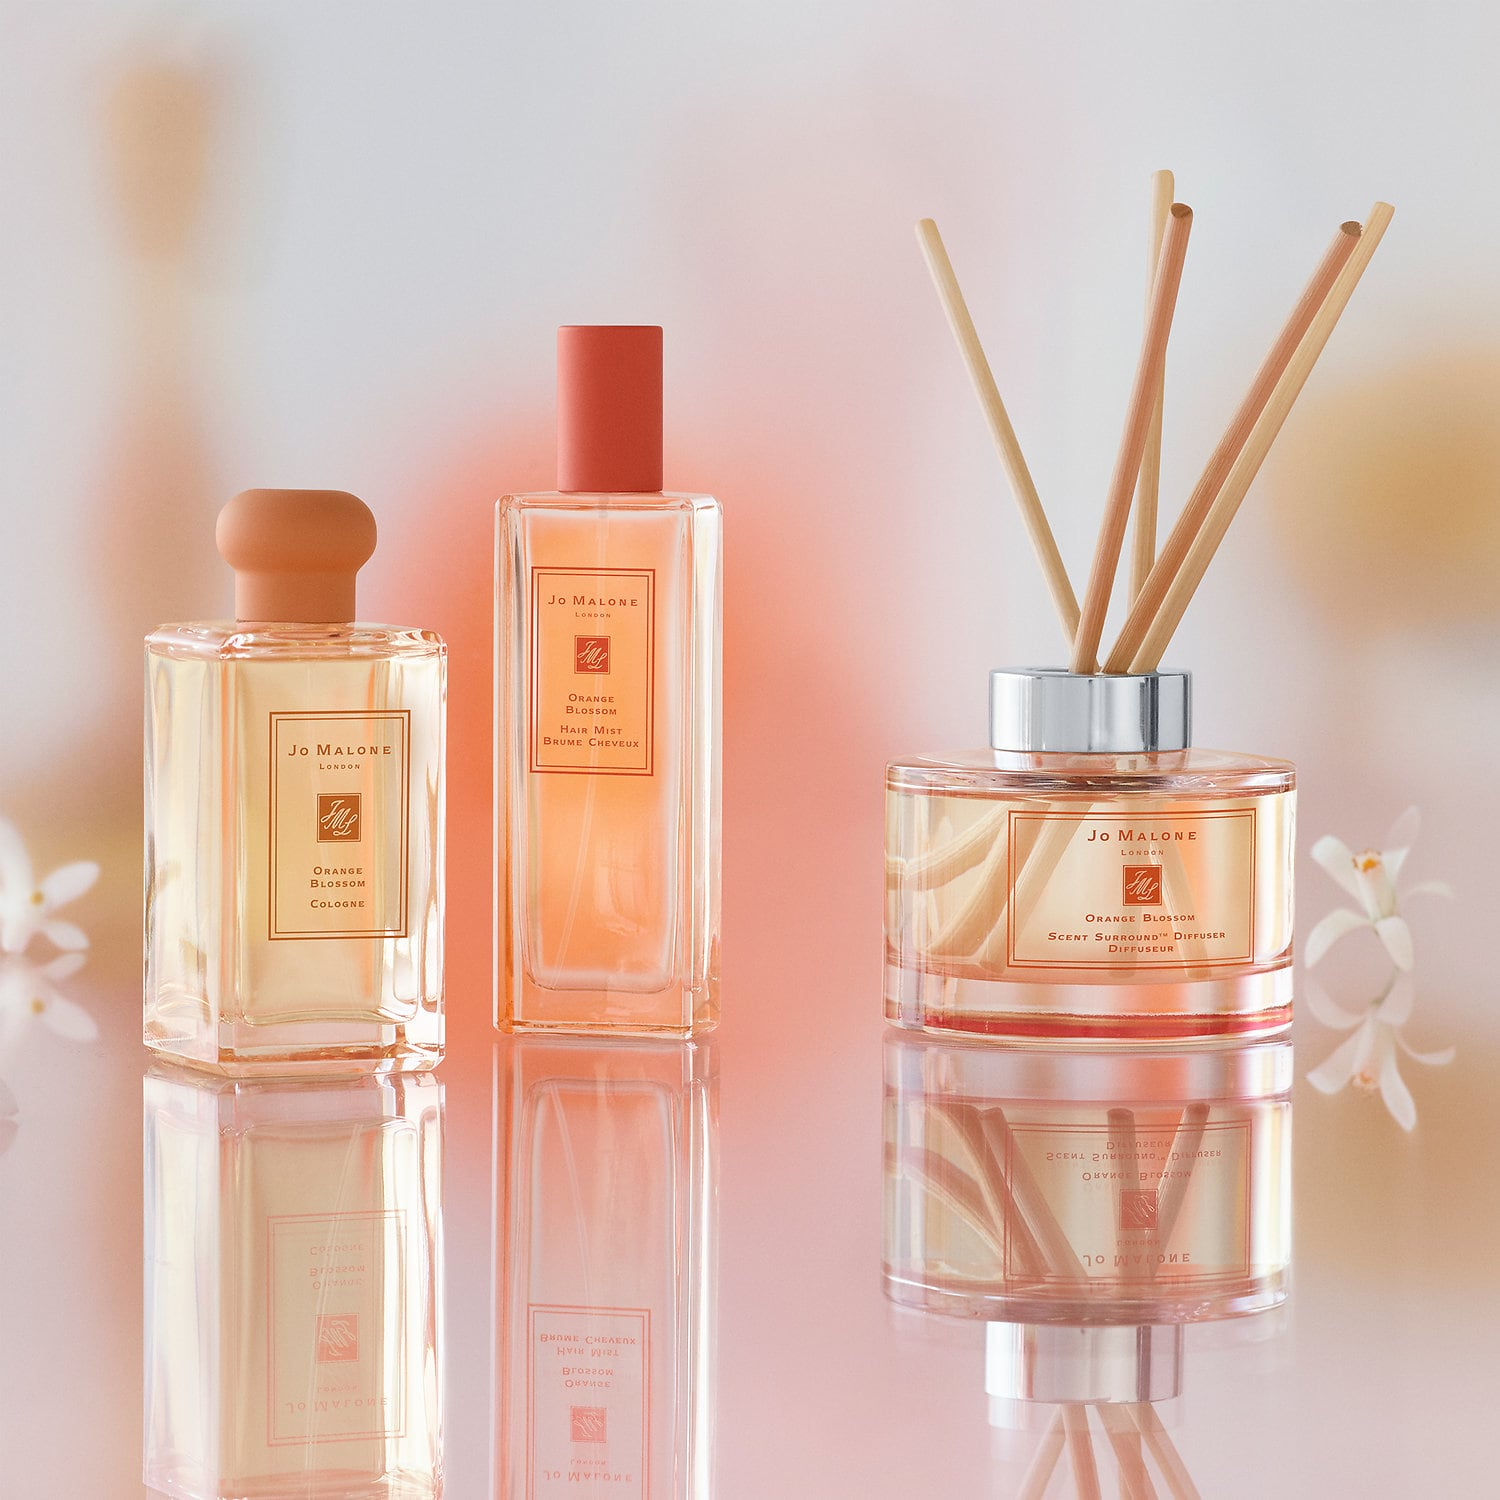 jo-malone-orange-blossom-cologne-2